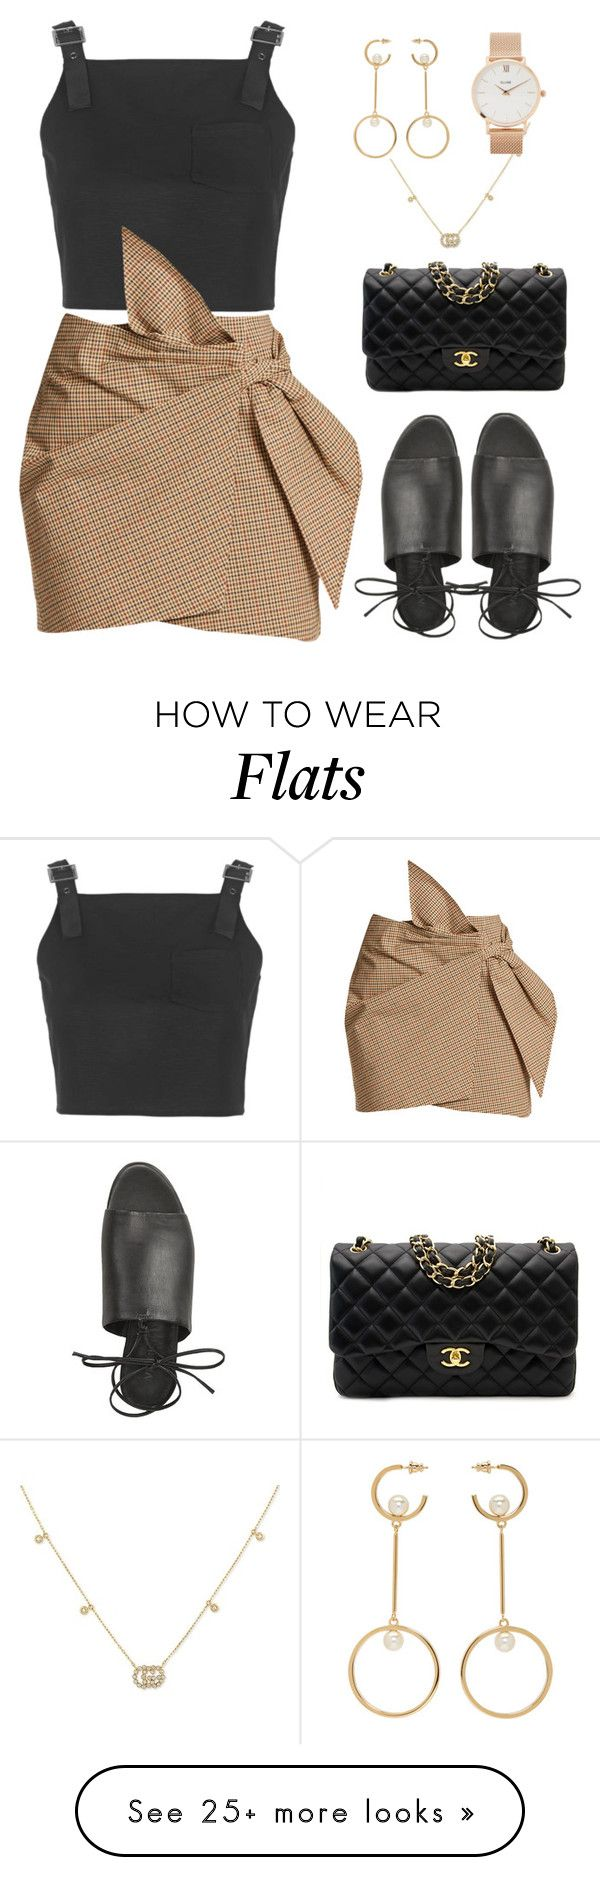 """Untitled #348"" by m0dernlove on Polyvore featuring Topshop, Étoile Isabel Marant, Chanel, Gucci, Chloé and CLUSE"